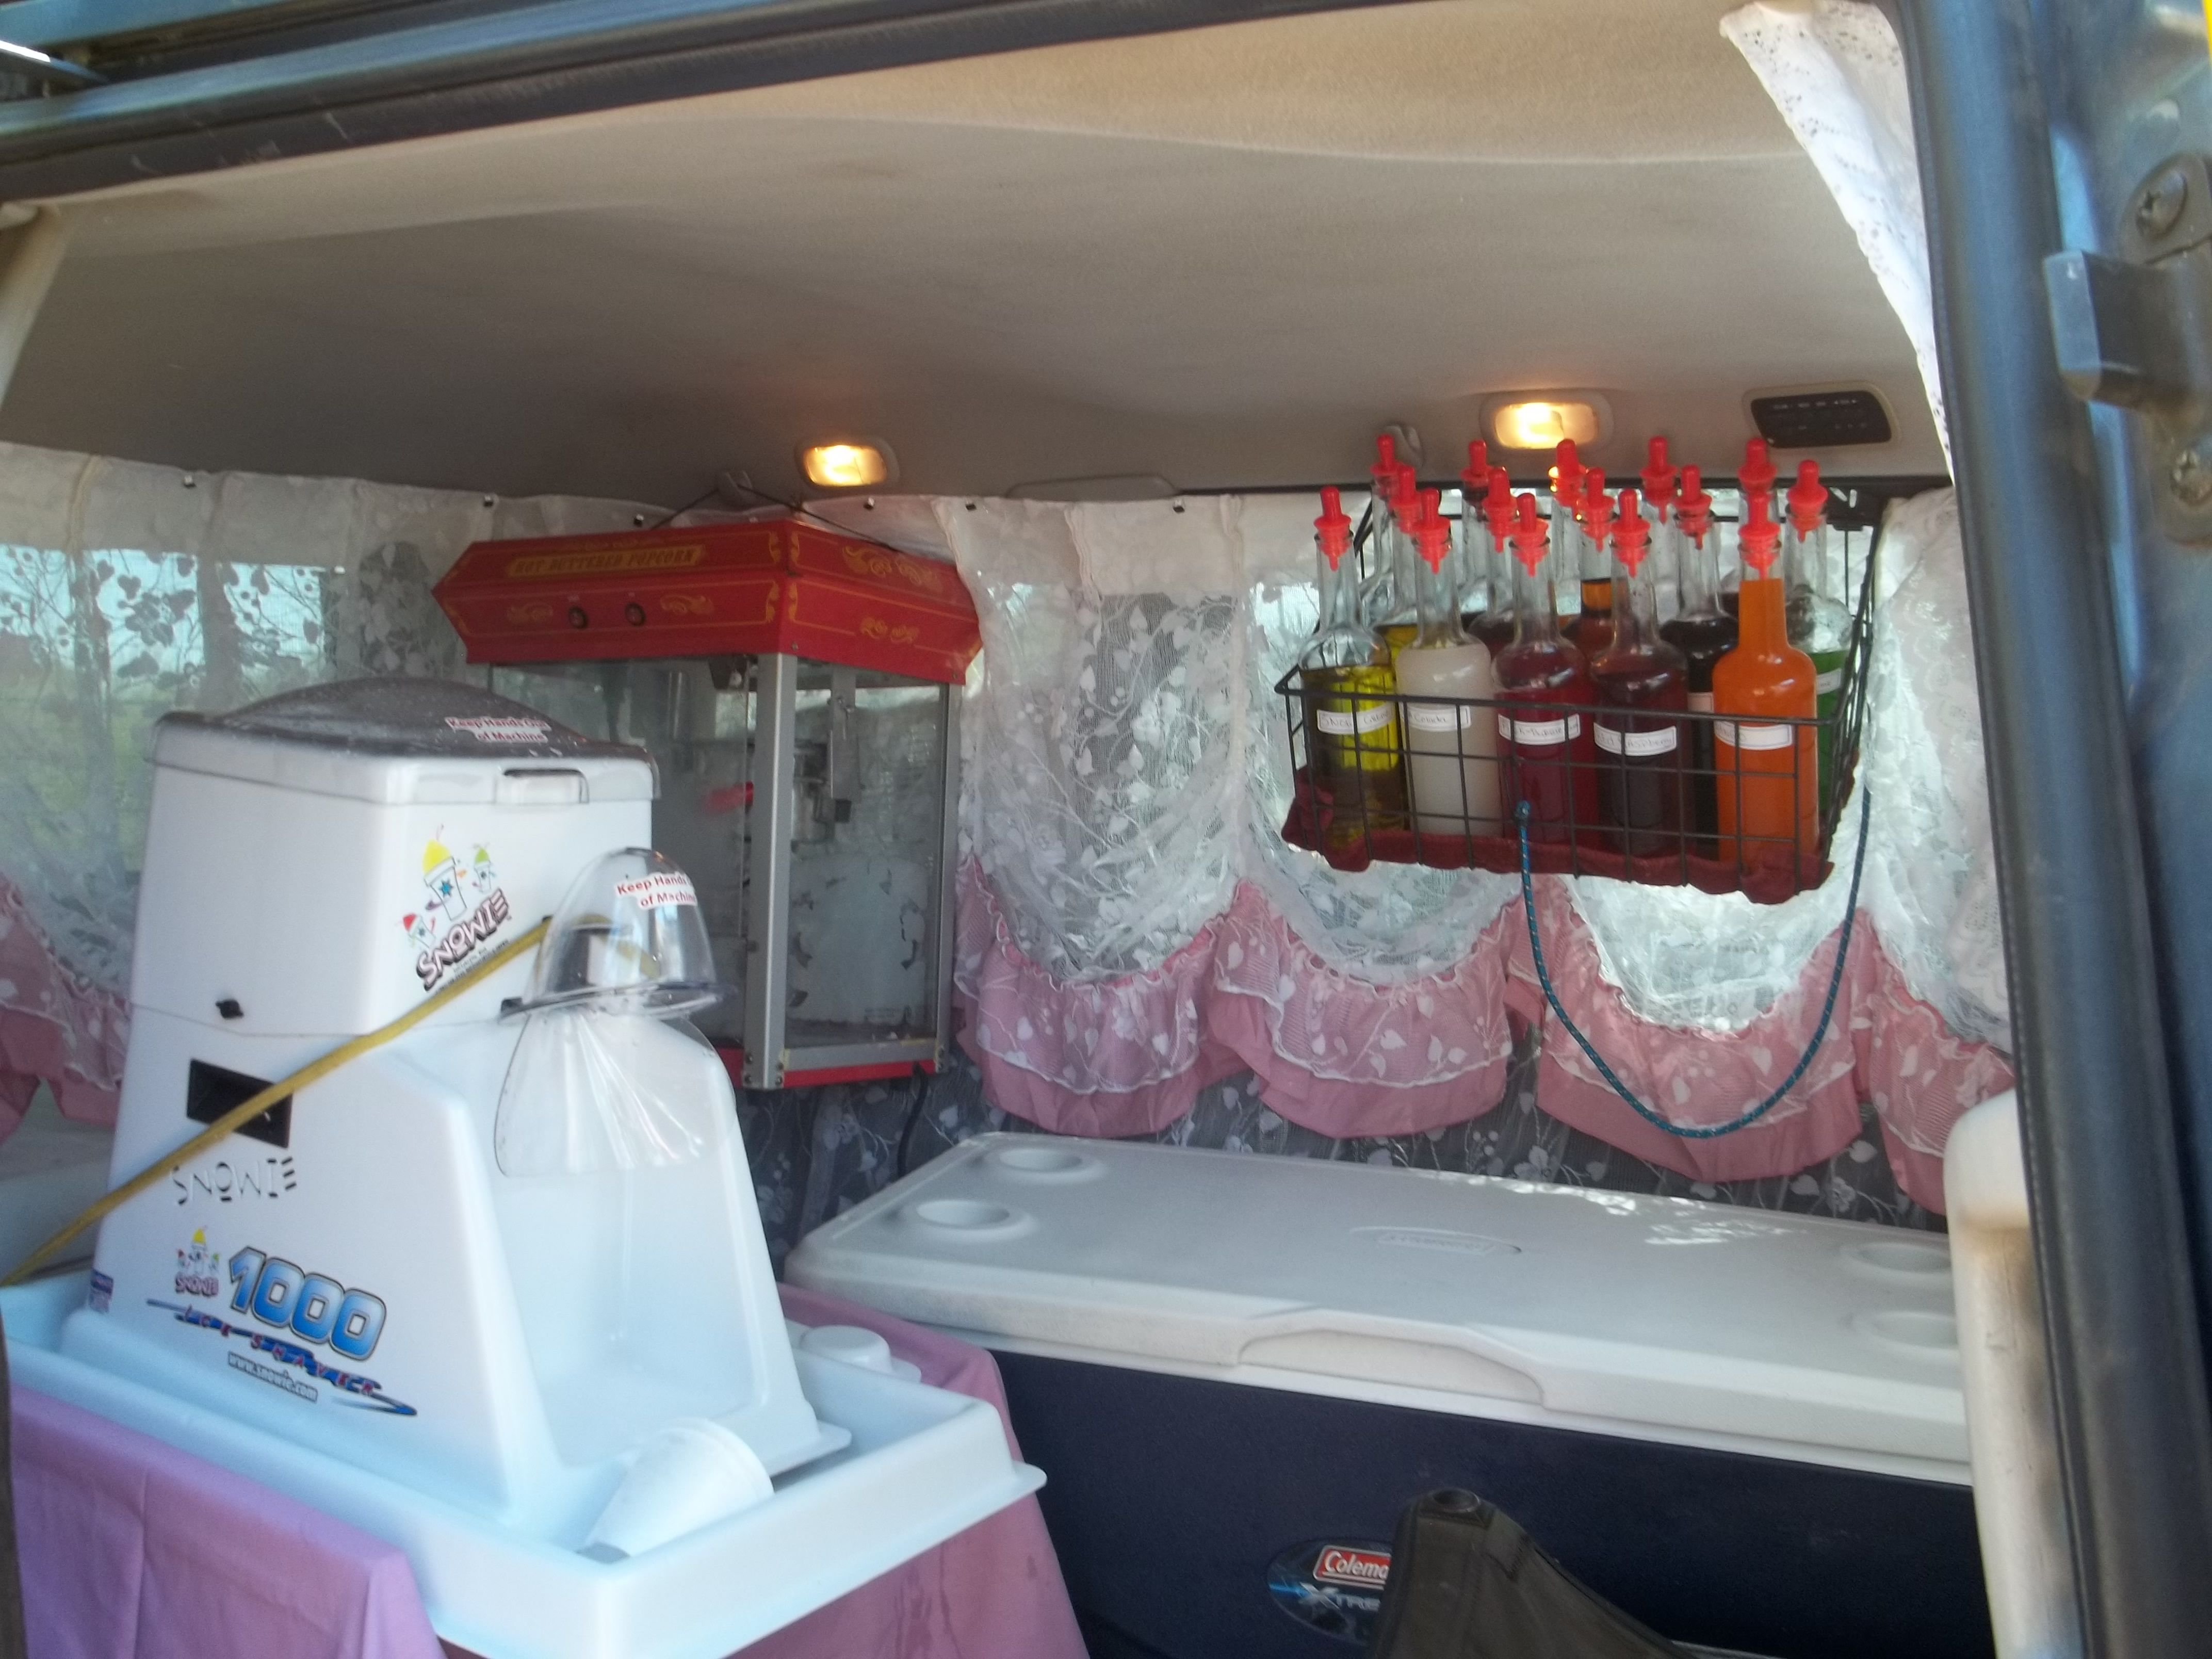 Heres A Peek Inside Our Little Snow Cone Van We Only Serve Real Fresh Powdered Snow Shaved Ice Not That Hard Snow Cones Snow Cone Stand Snow Cone Machine